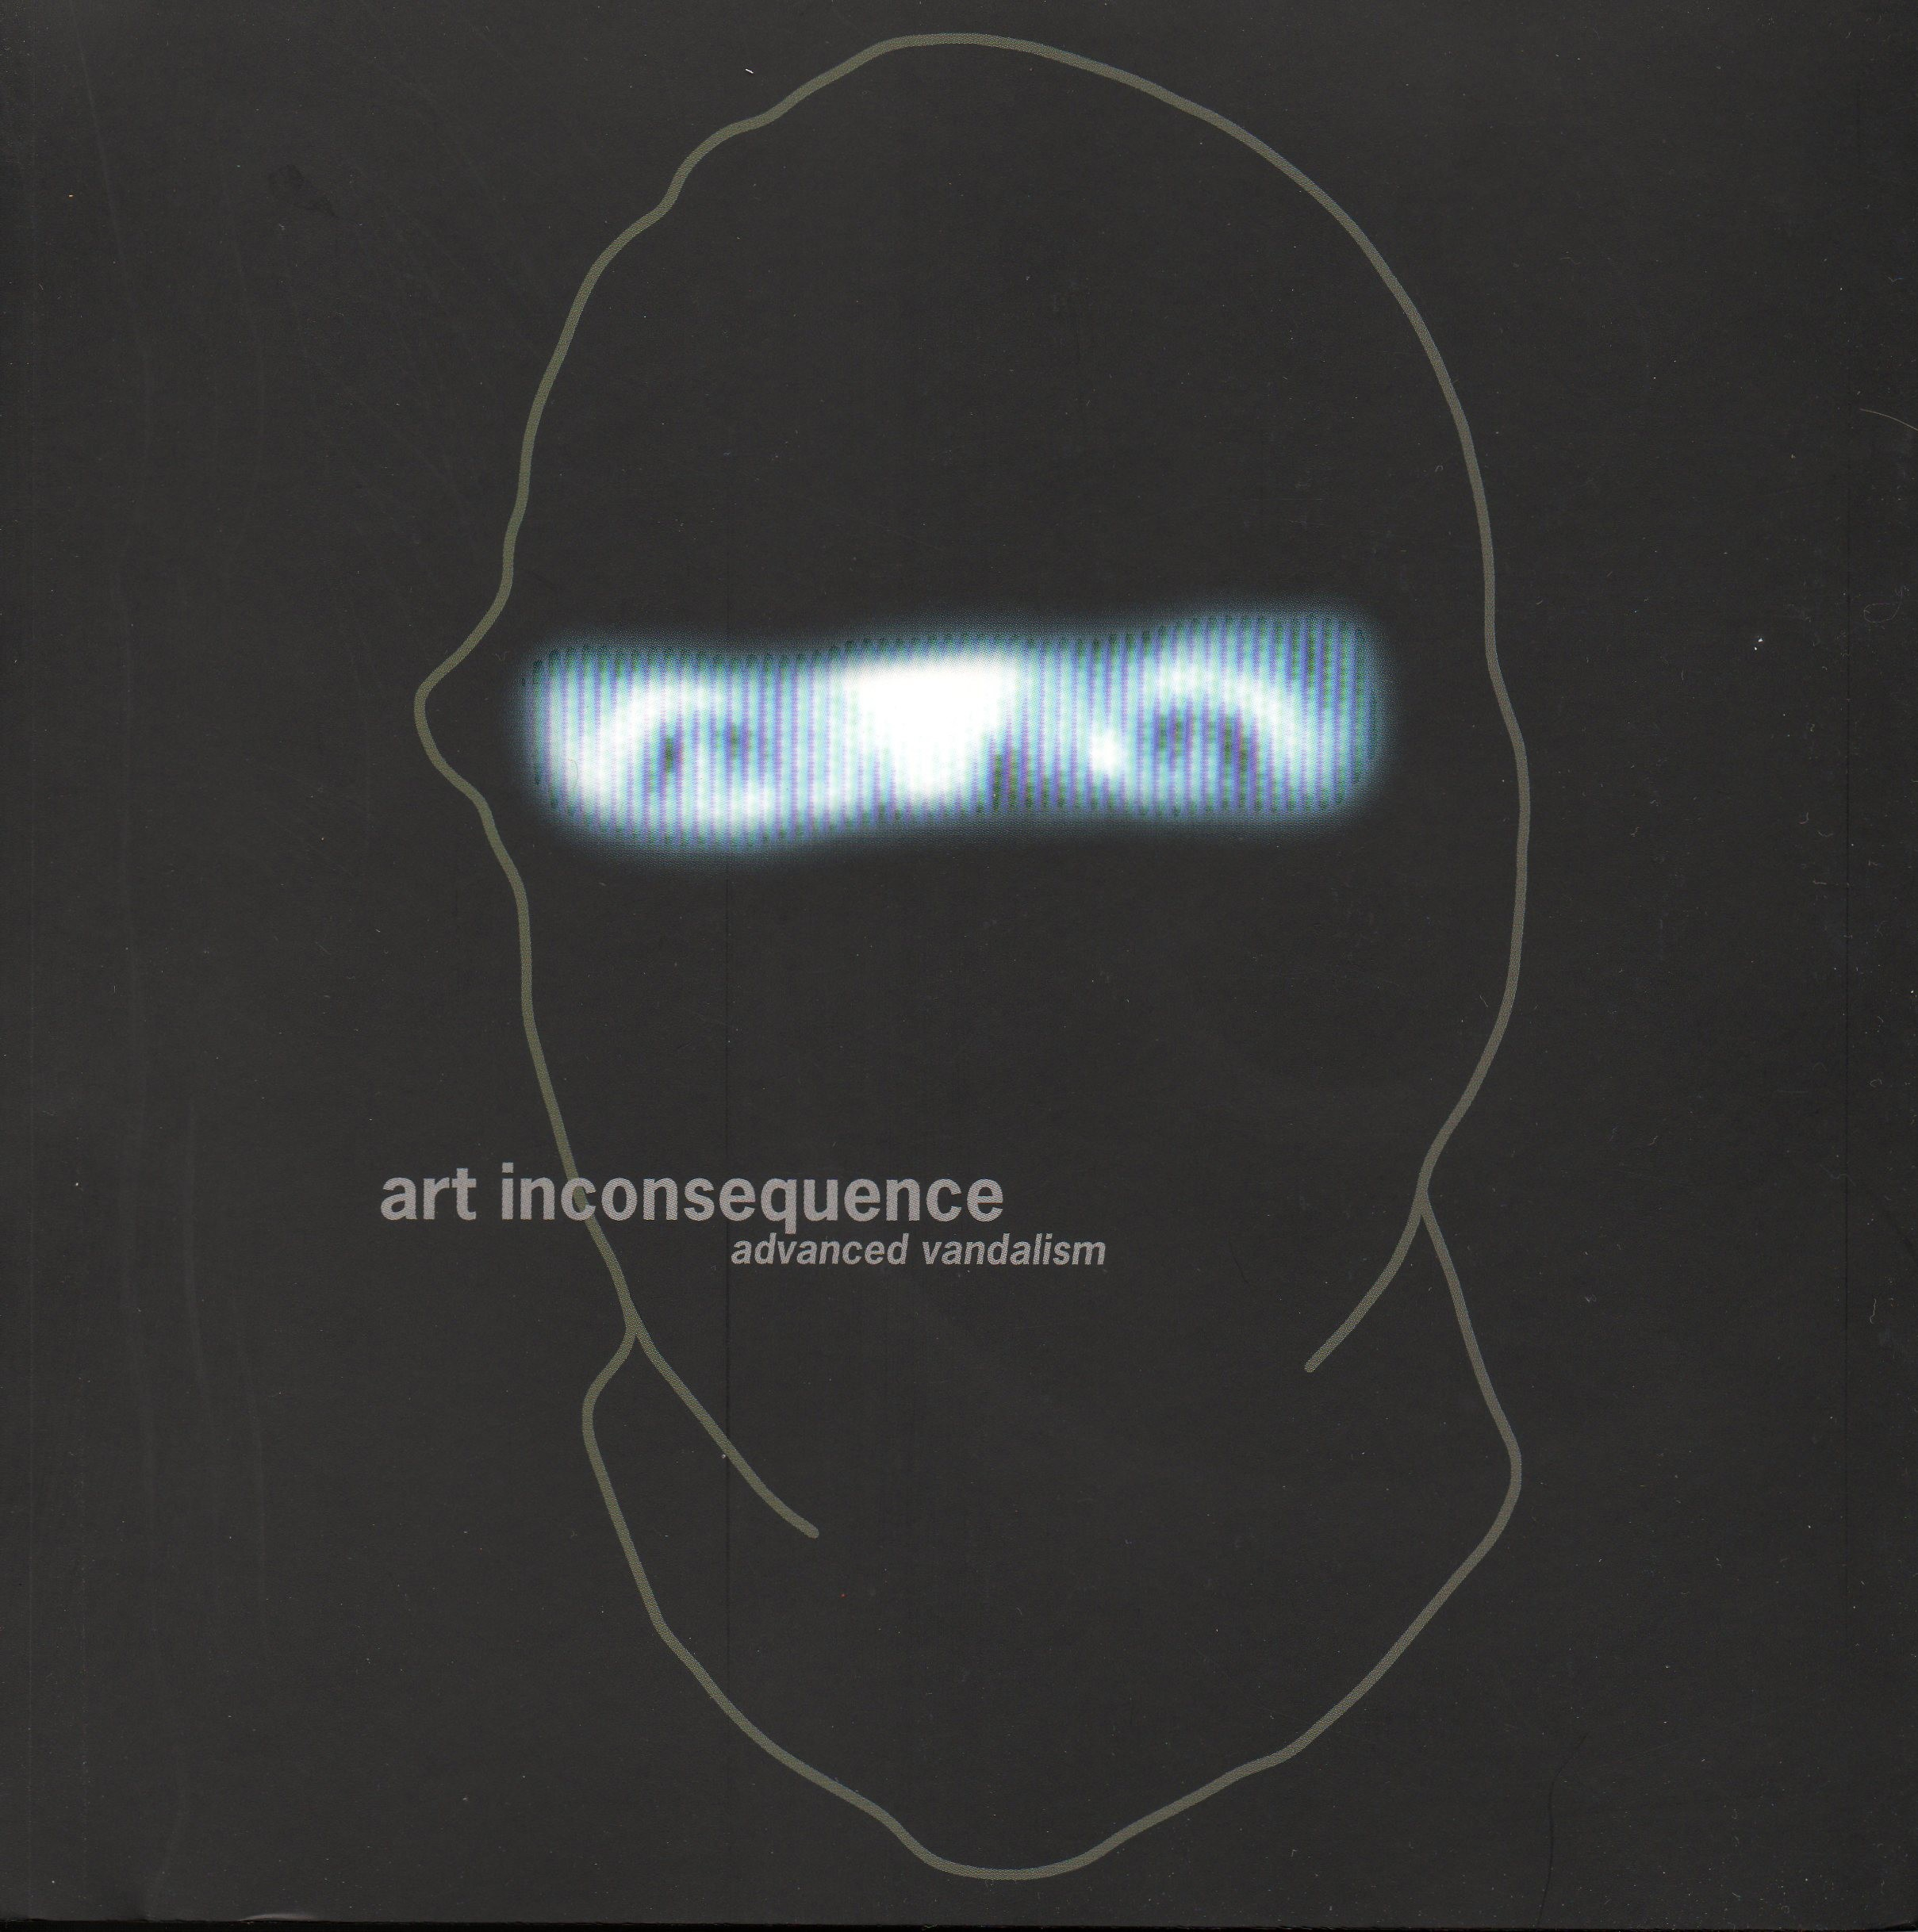 ART INCONSEQUENCE - BOOK